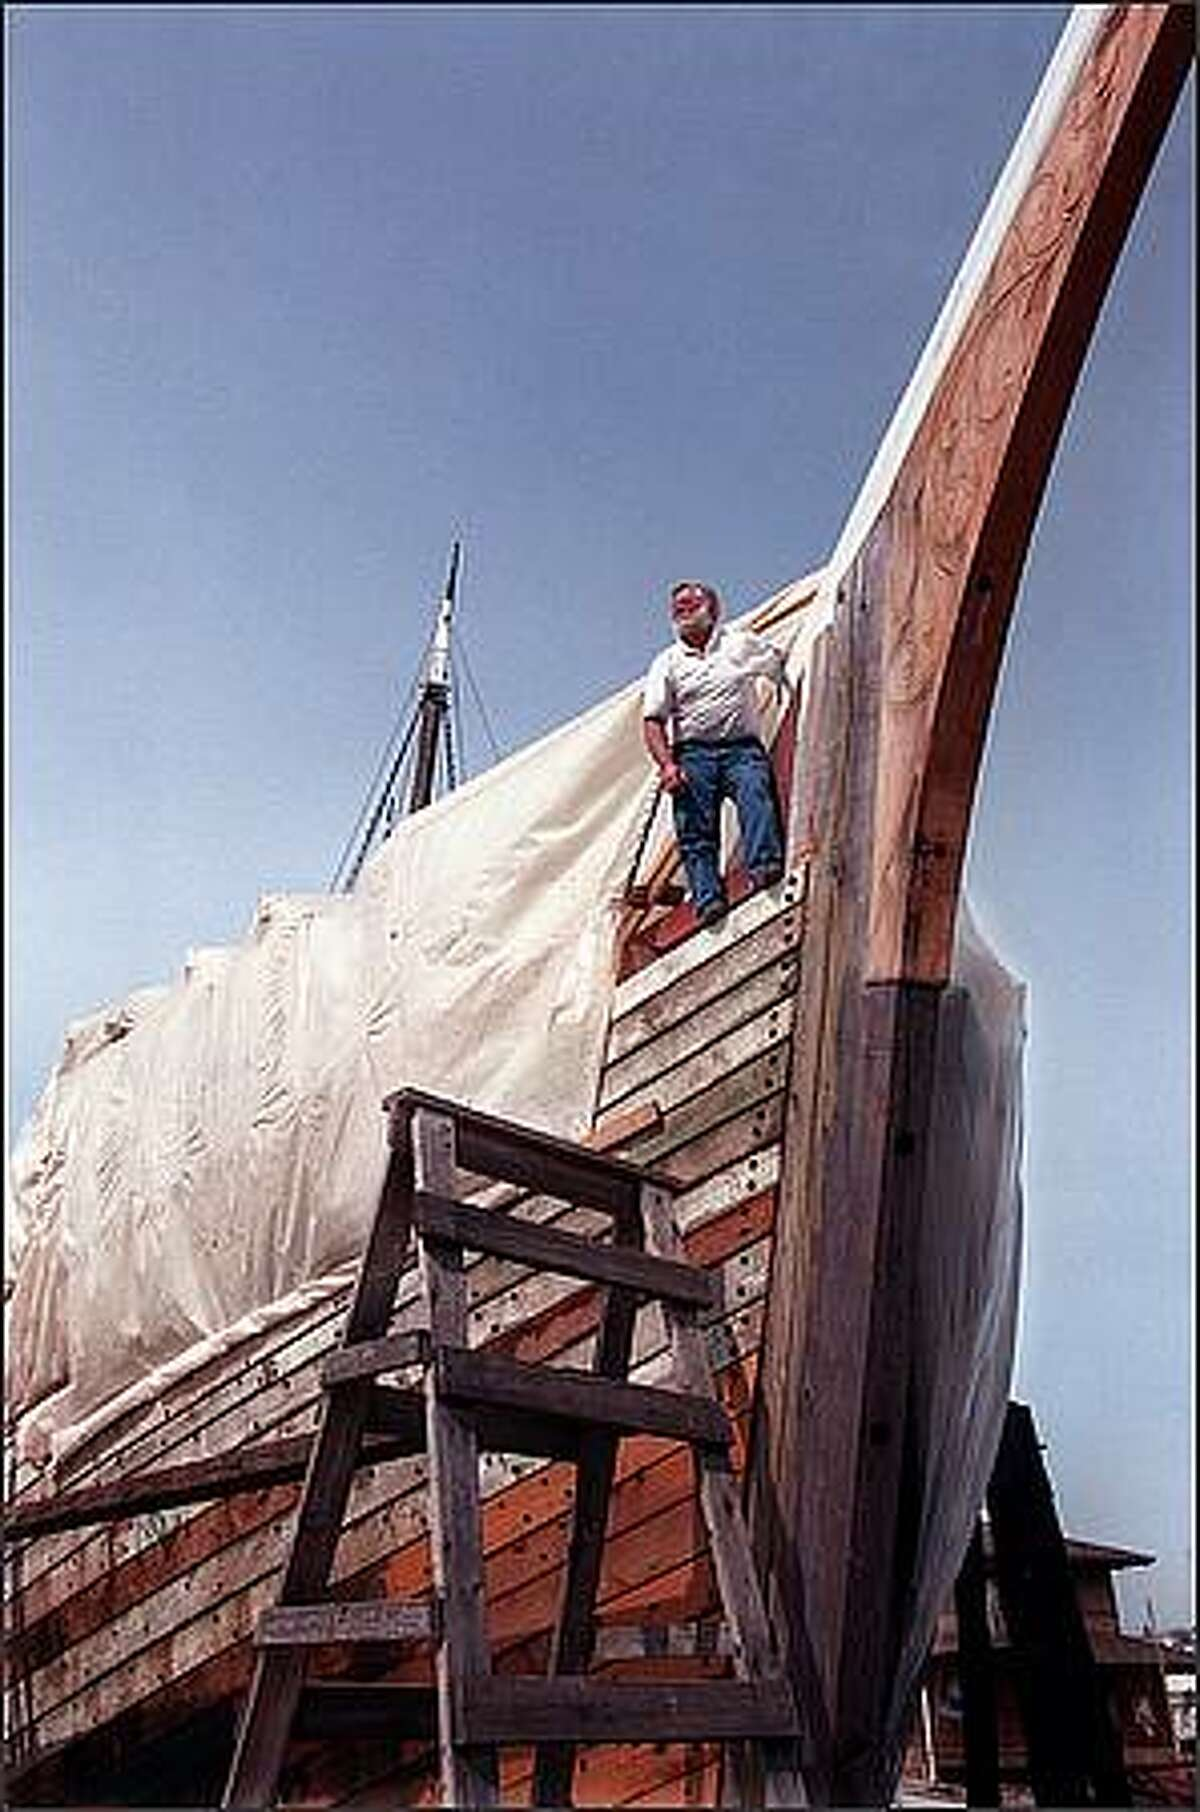 Bill White, shipwright and director of restoration at Northwest Seaport, stands aboard the fruits of his labor, the ongoing restoration of the 1897 schooner Wawona. April 24, 1998.